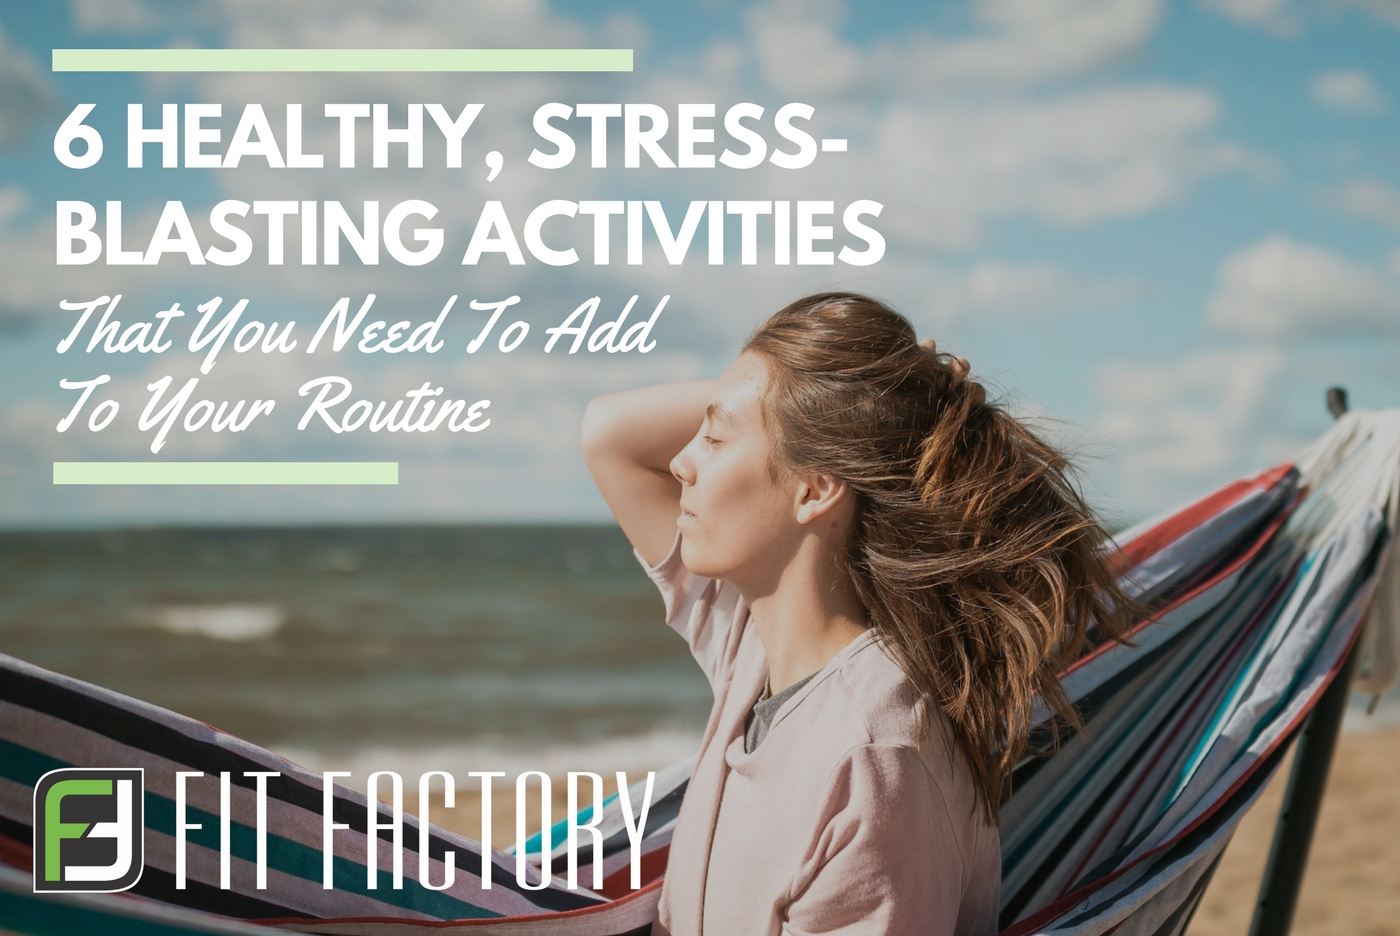 6 Healthy, Stress-Blasting Activities You Need To Add To Your Routine